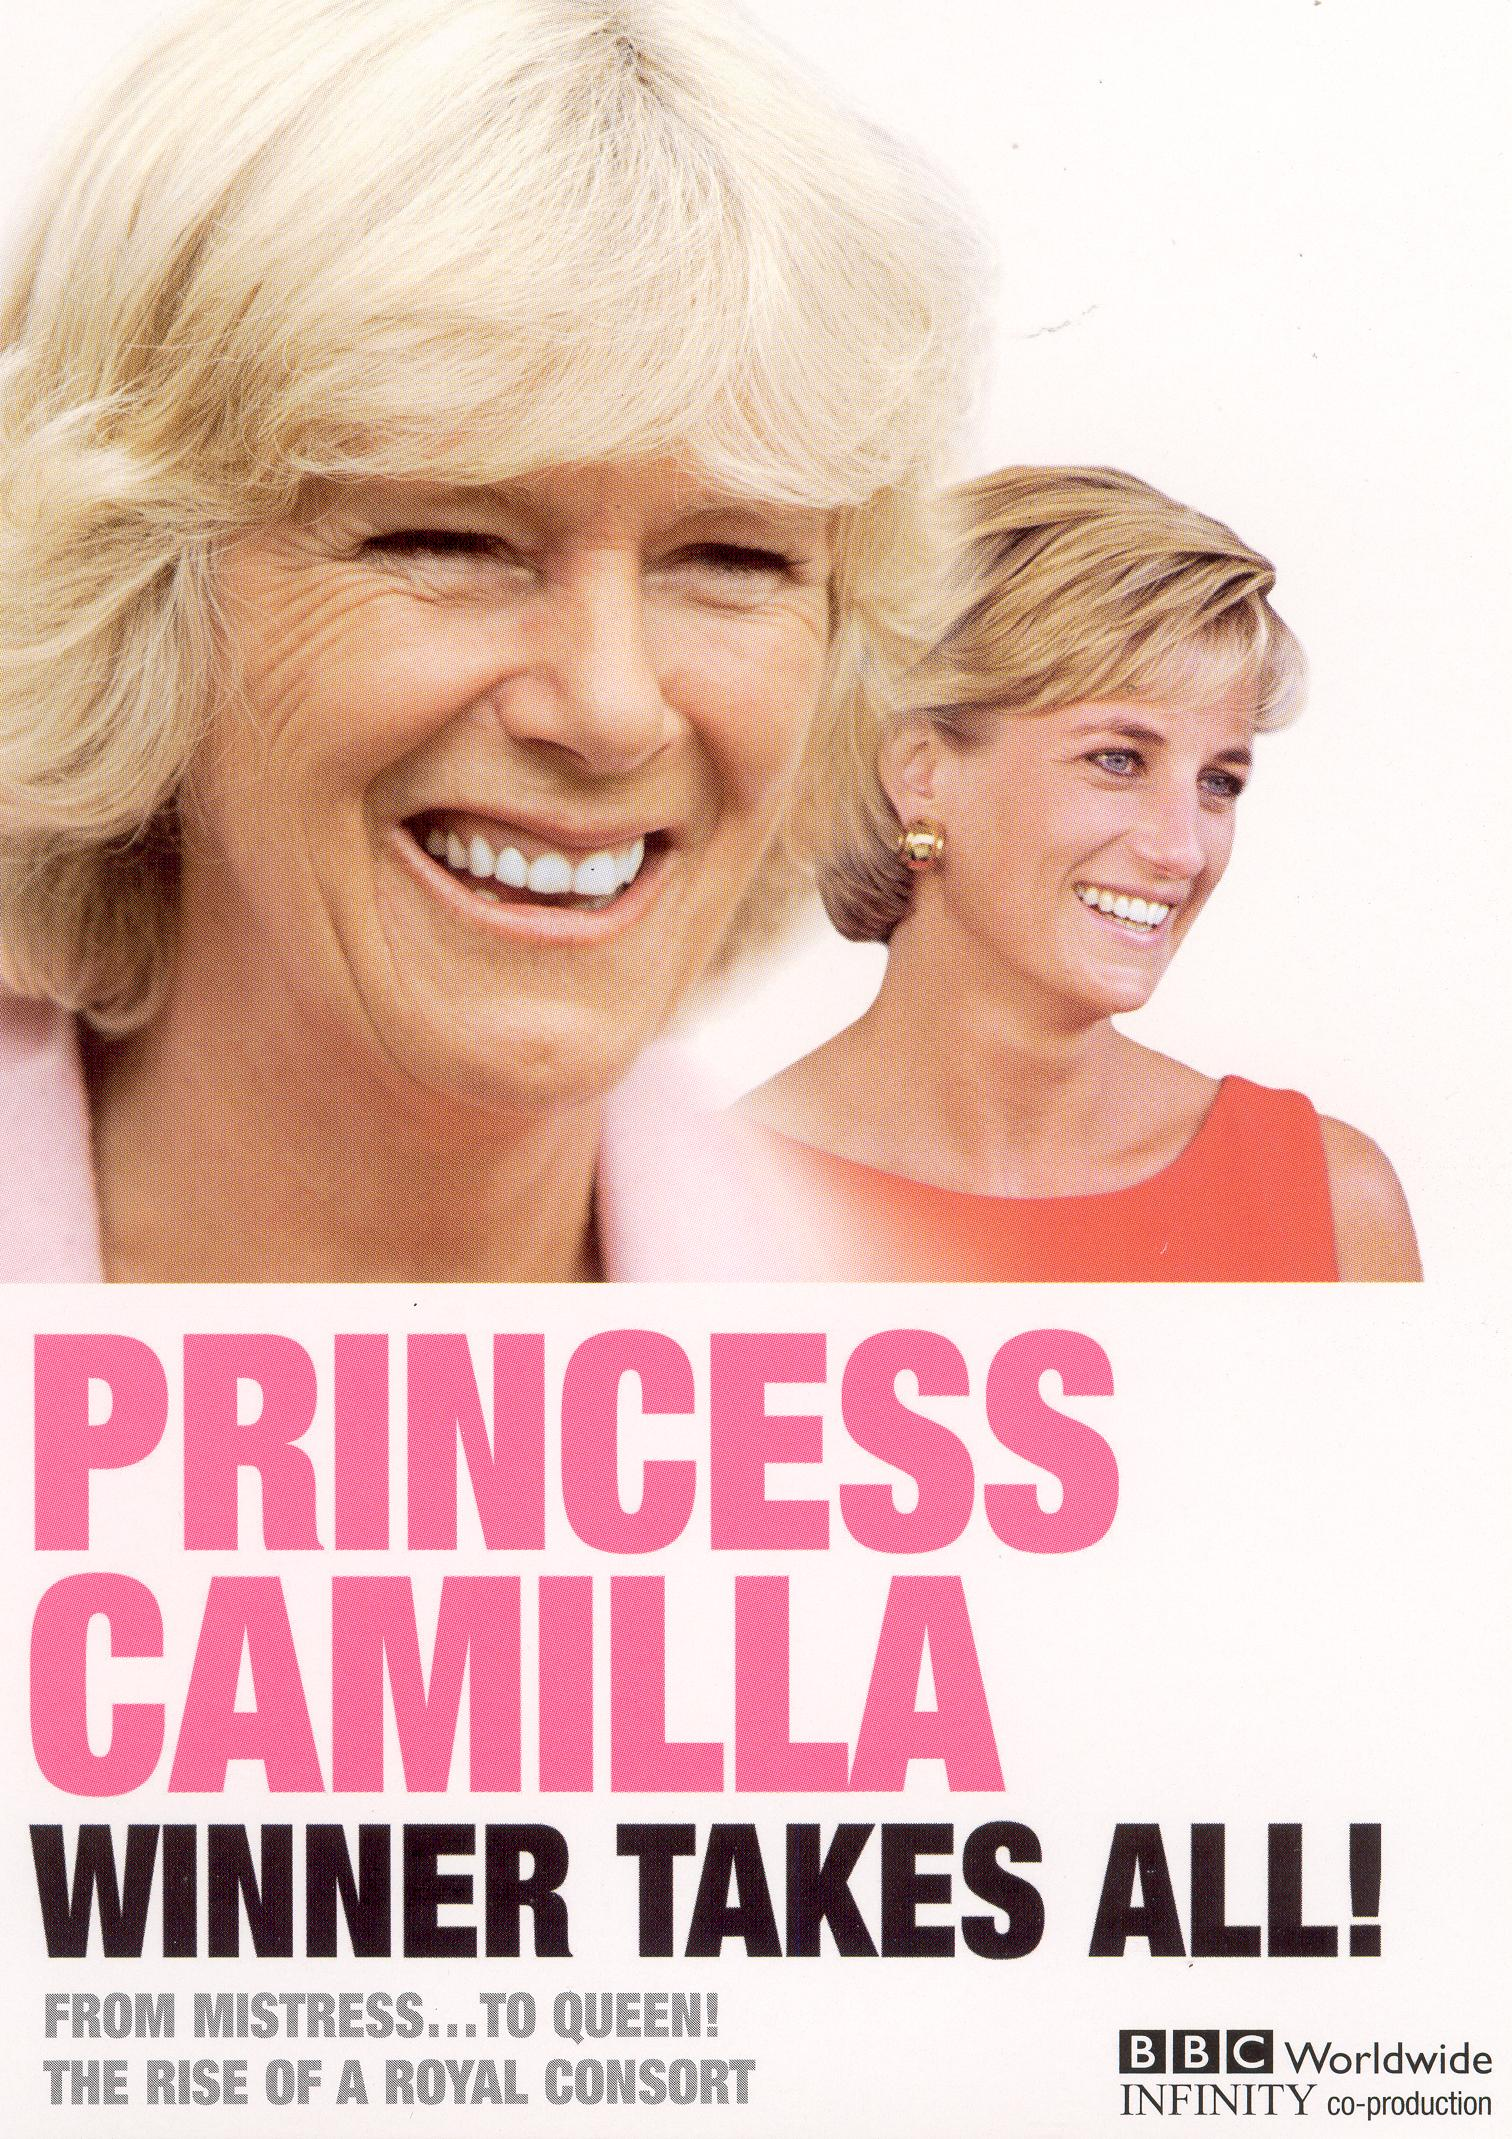 Royals Today: Princess Camilla - Winner Takes All!